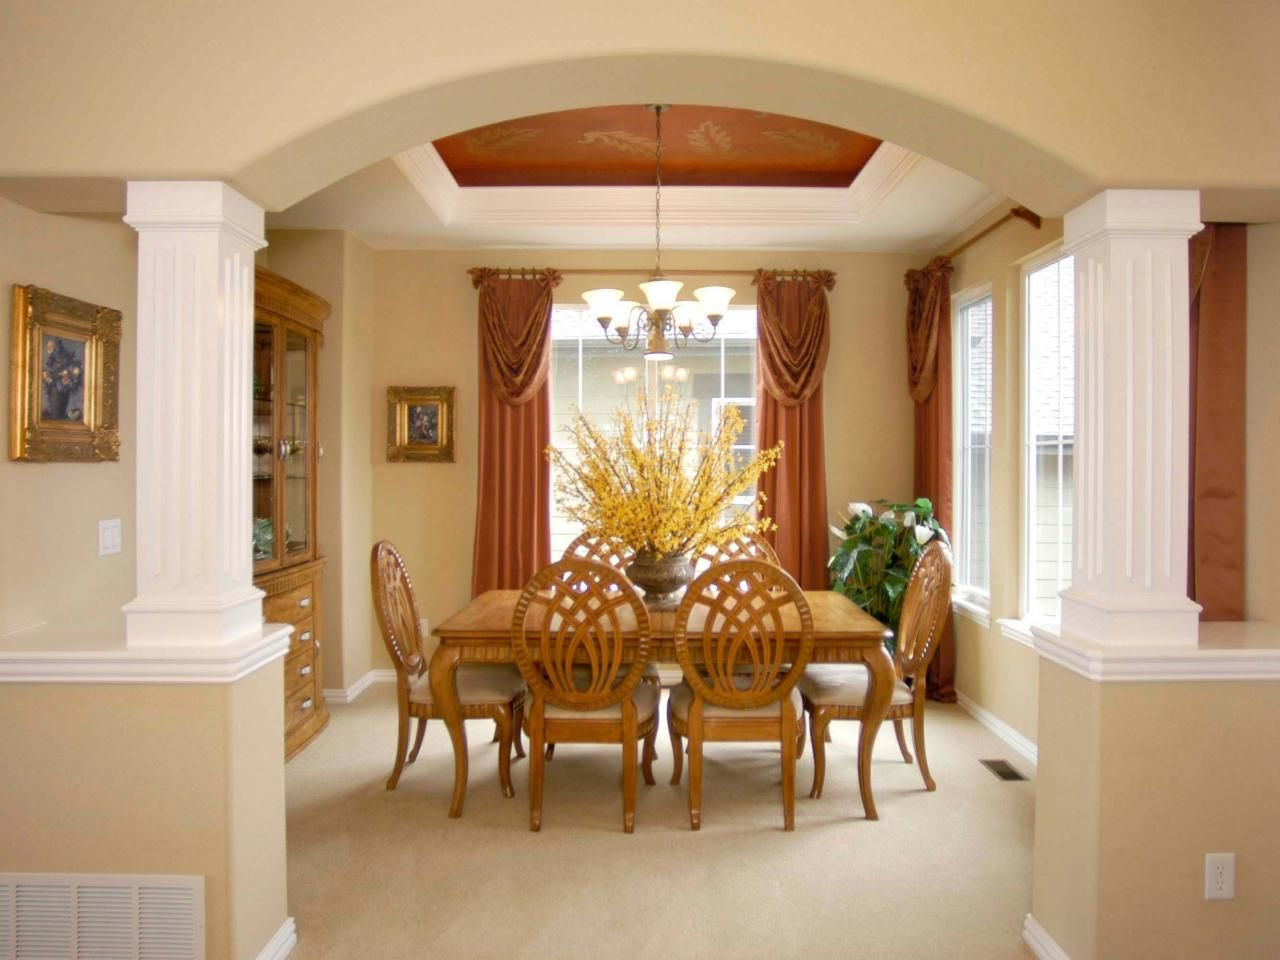 Elegant draperies, columns and an arched soffit help define this dining area as a formal space to entertain guests. The space's tray ceiling is painted a dark shade of salmon to match the dramatic window treatments.